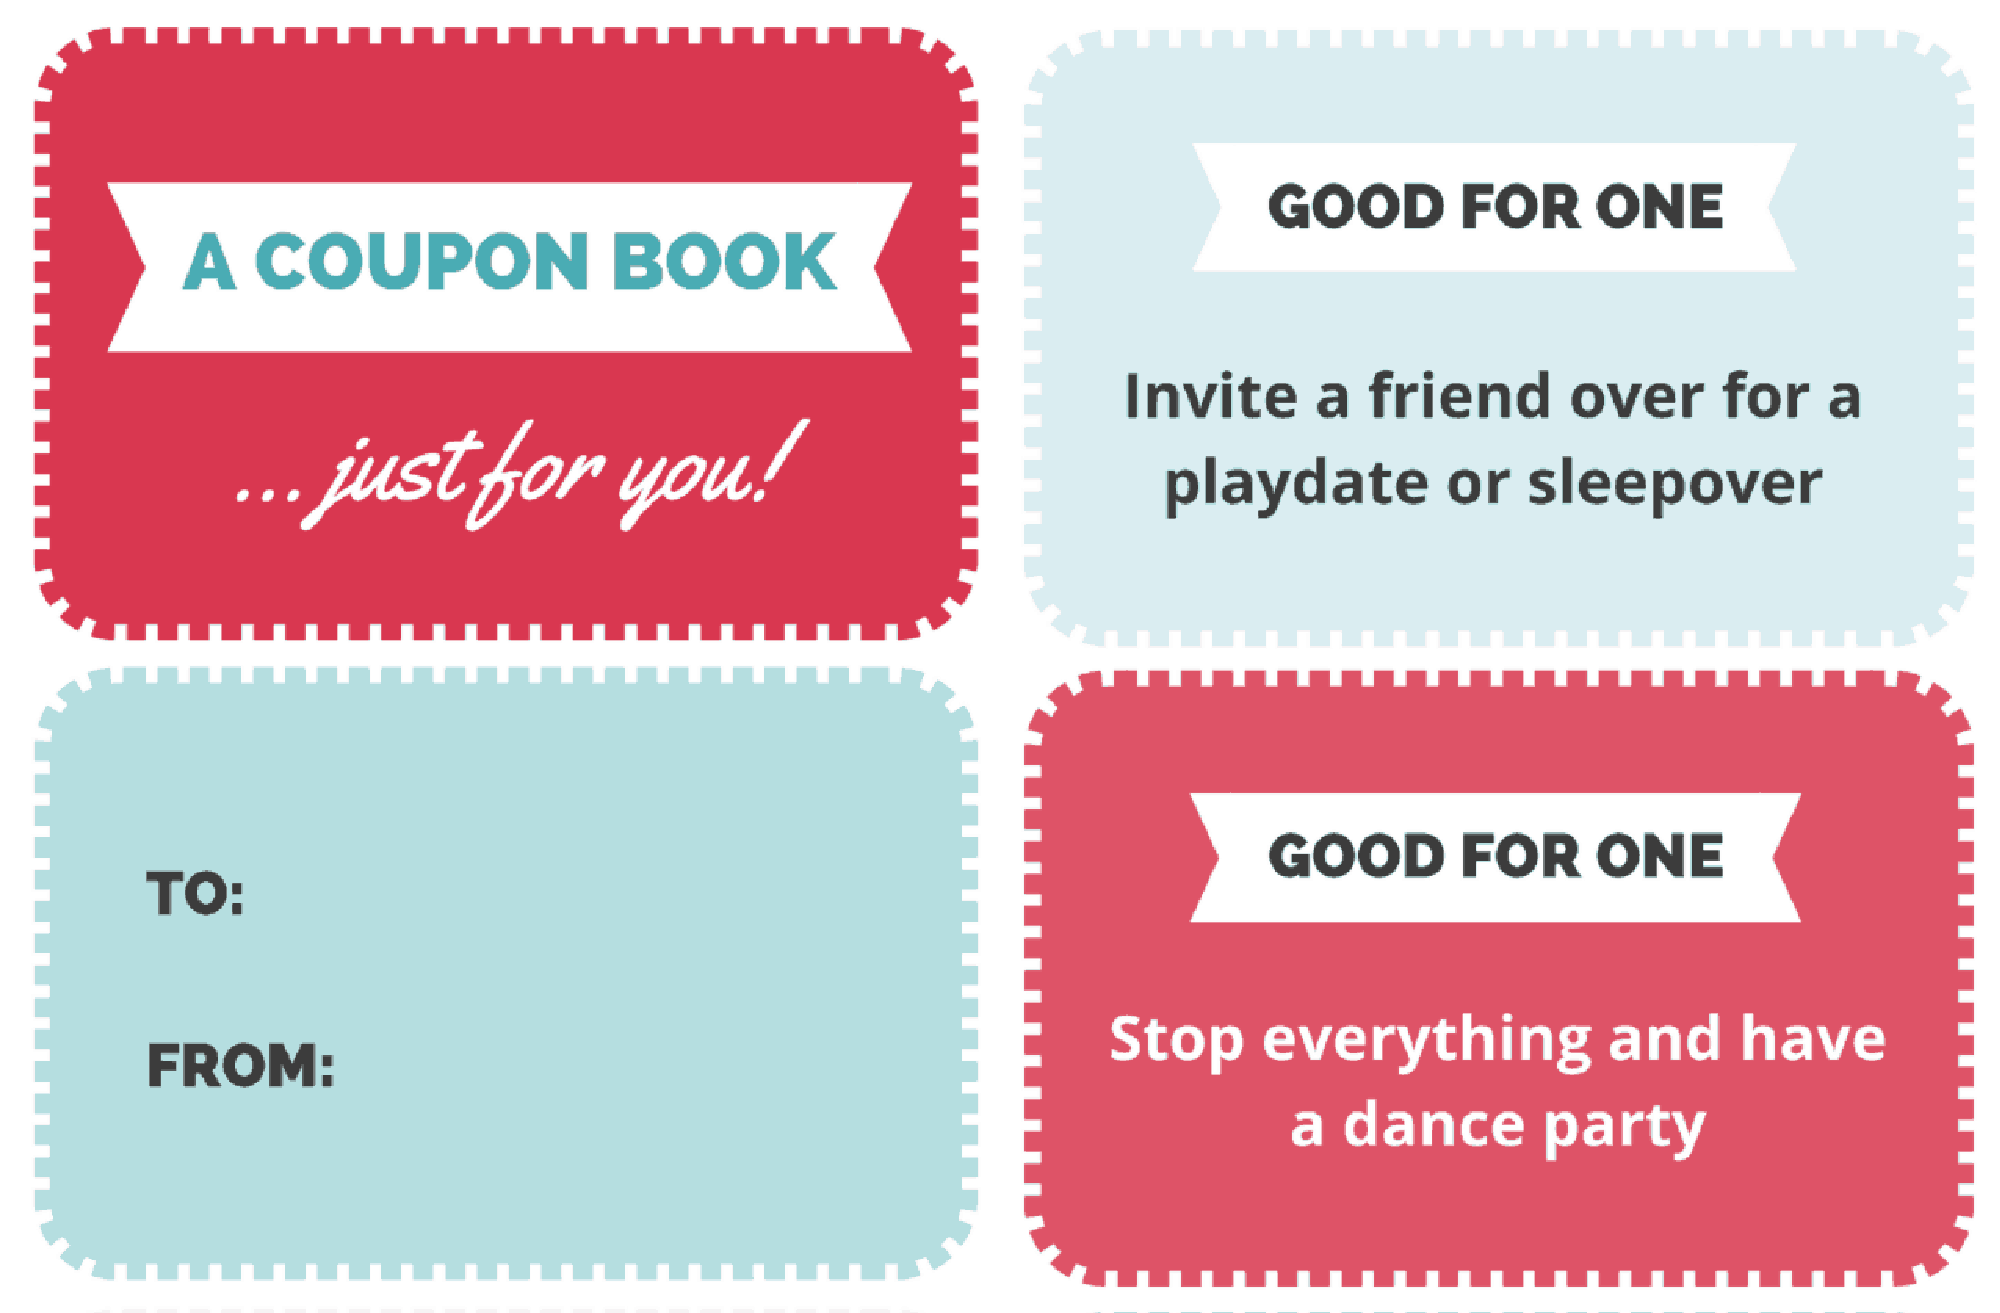 free printable coupon book for kids - Free Printable Books For Kids